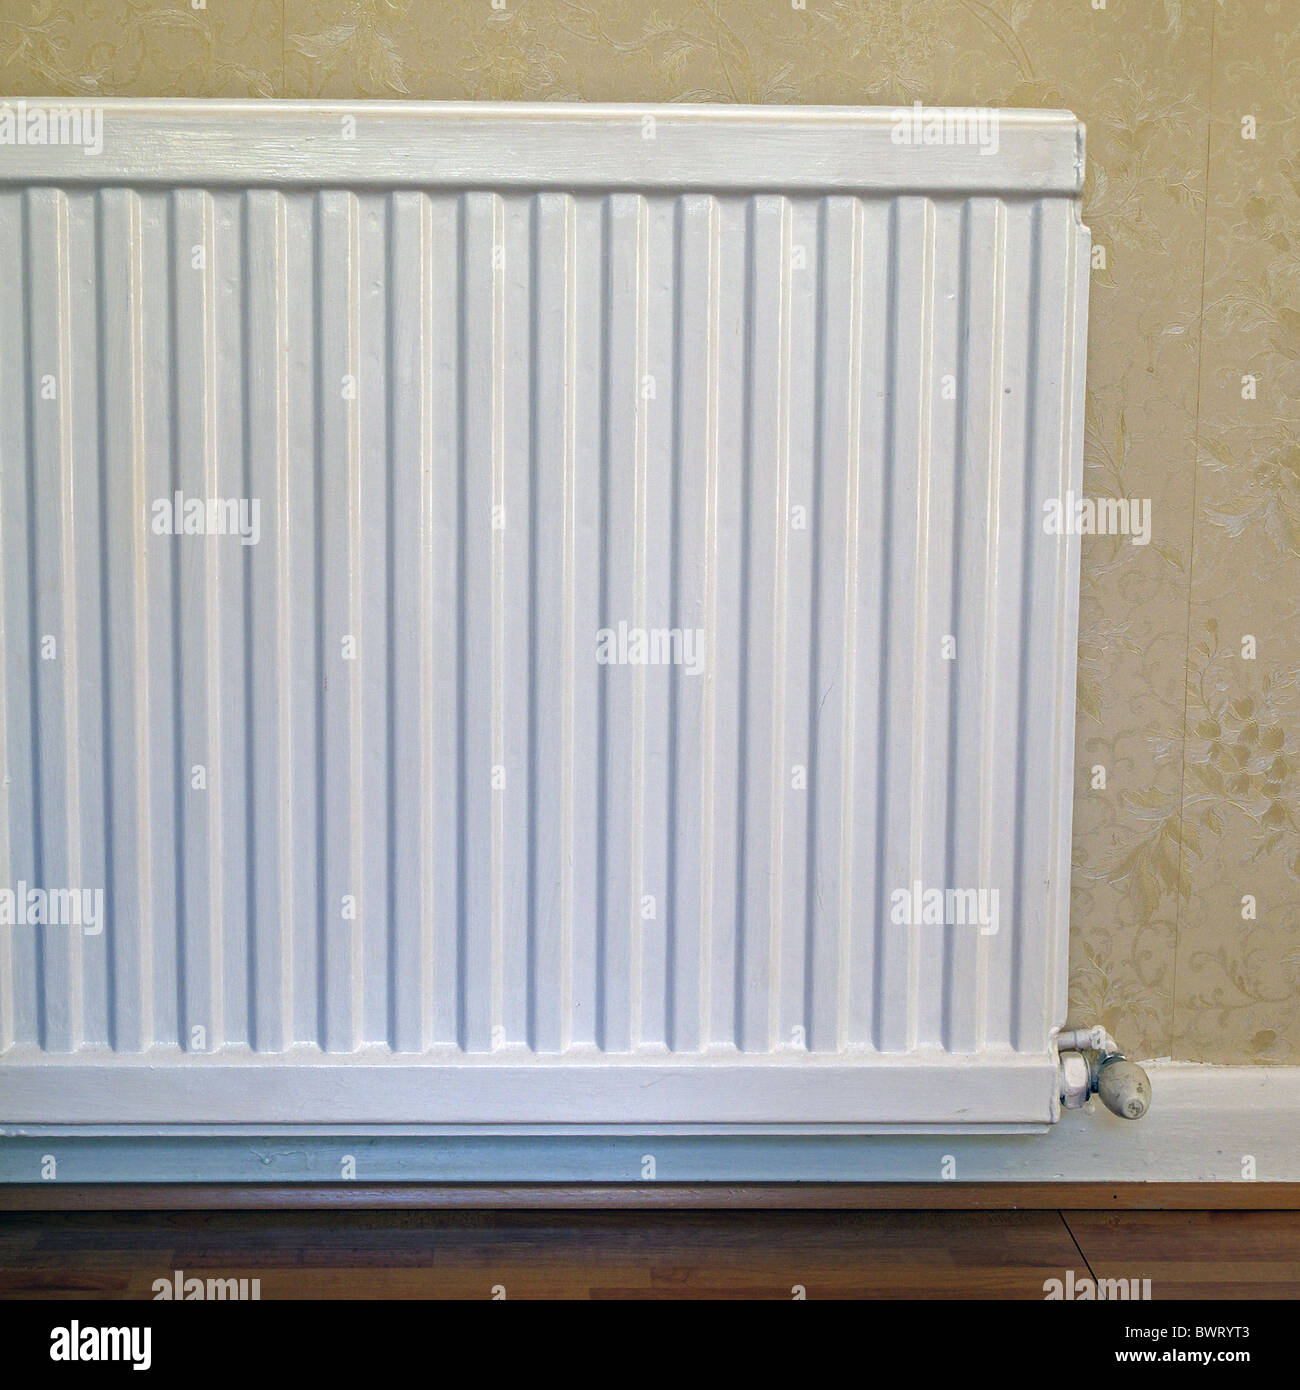 White Painted Domestic Metal Radiator forming part of a central heating system, UK - Stock Image